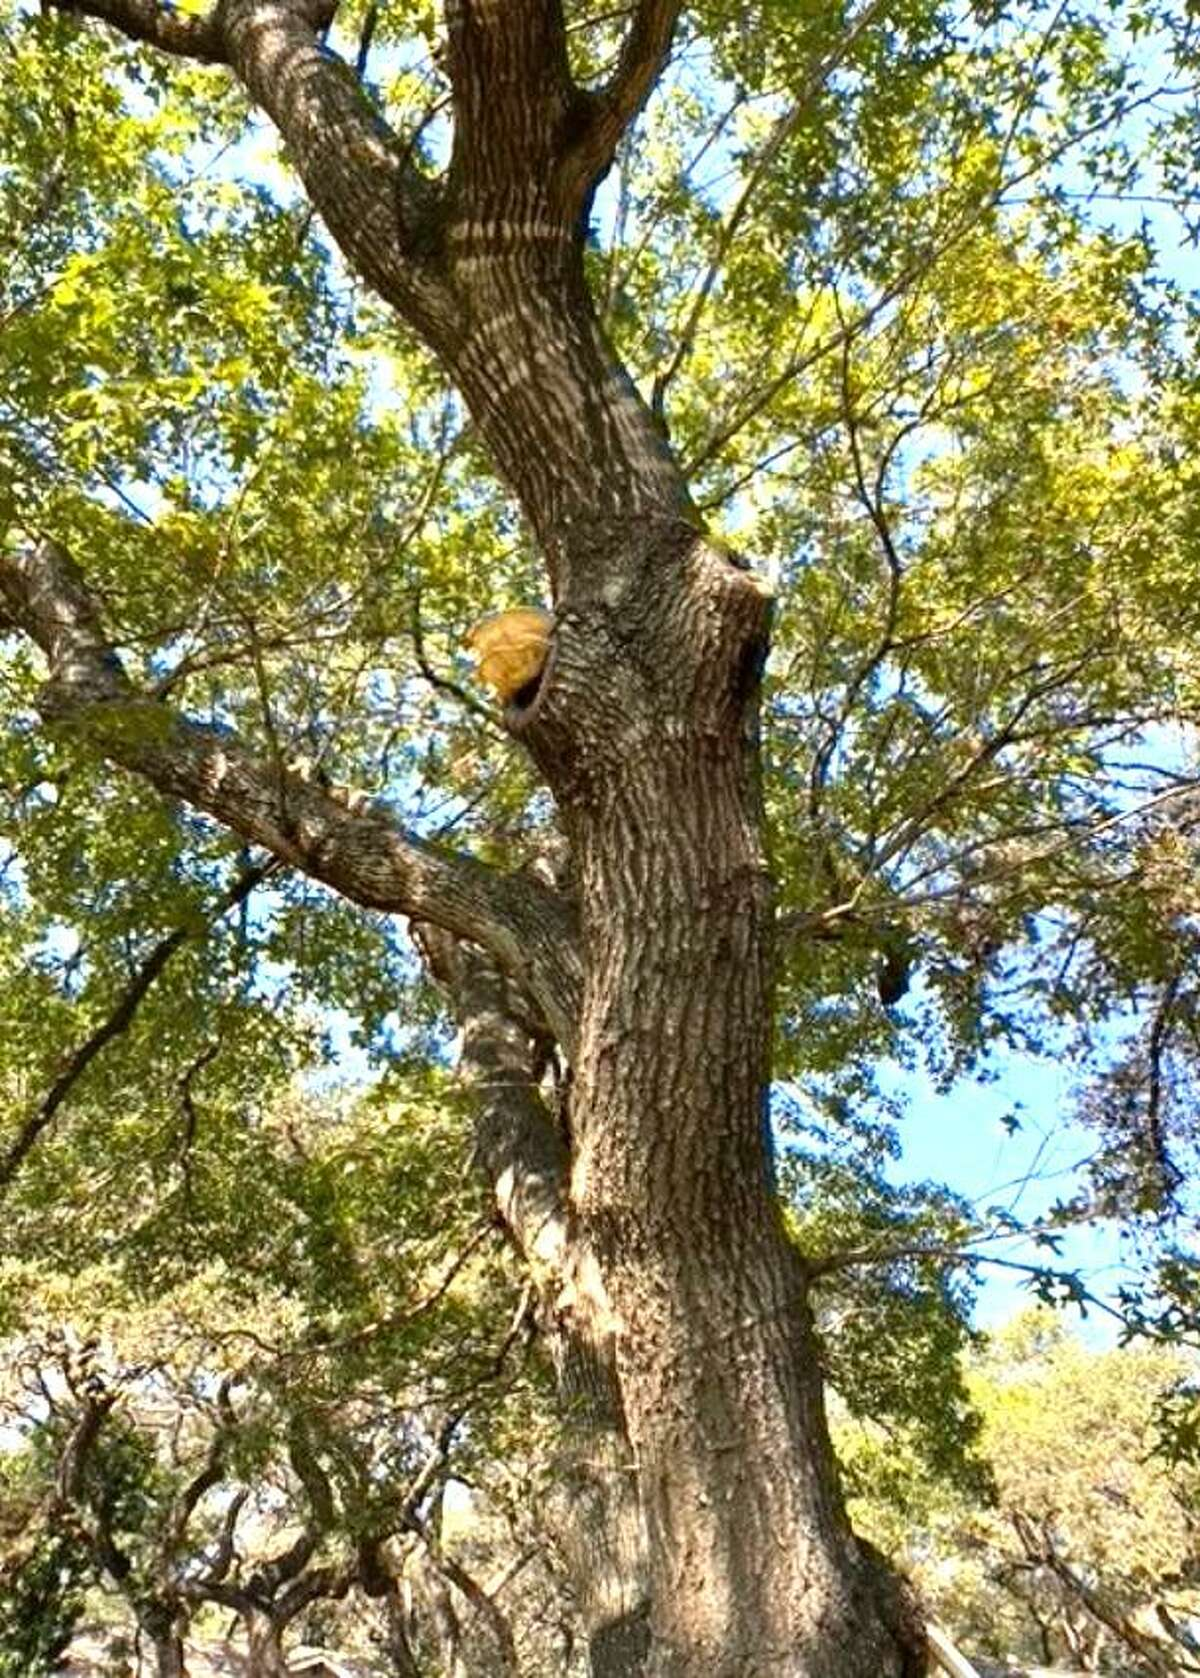 There is a serious decay fungus that has developed within the internal tissues of this red oak. The wood of the tree is severely weakened, and at some point in the near future this tree is likely to fall.